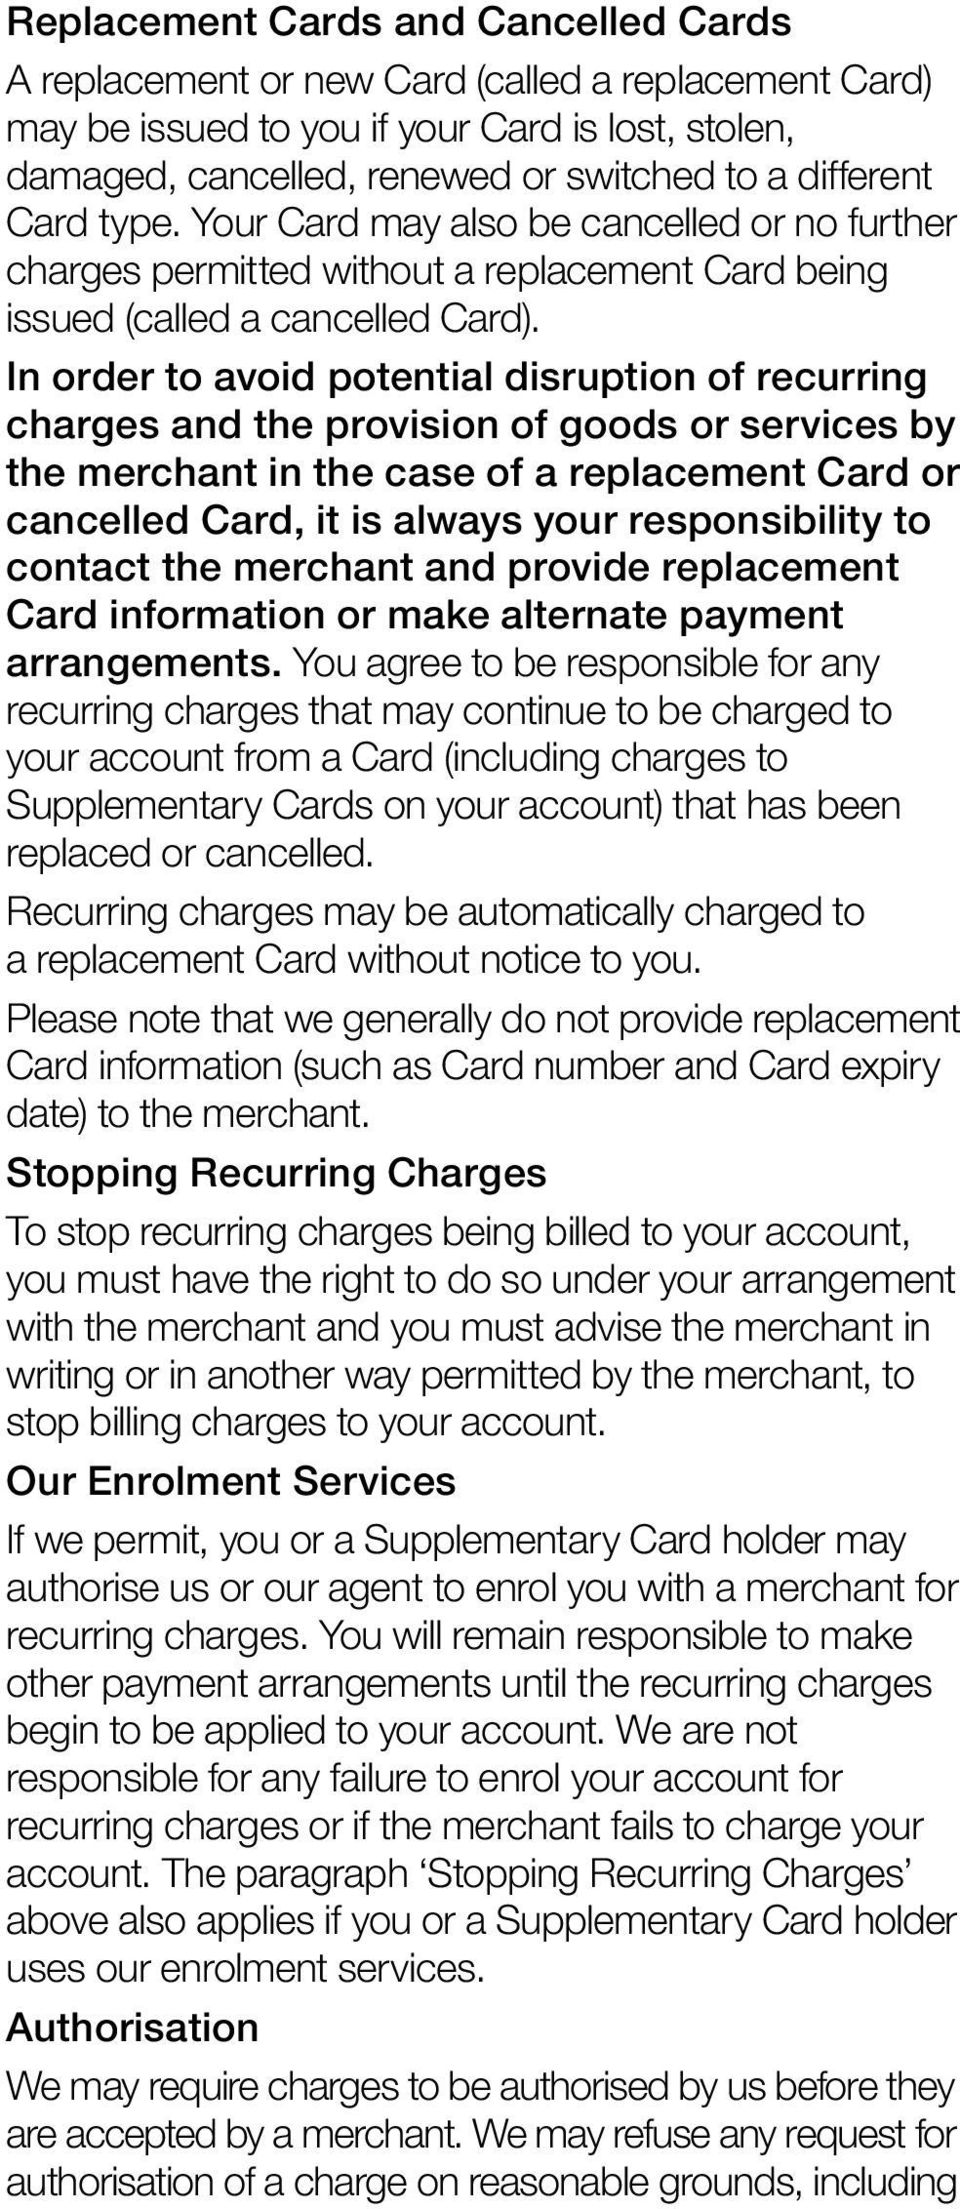 In order to avoid potential disruption of recurring charges and the provision of goods or services by the merchant in the case of a replacement Card or cancelled Card, it is always your